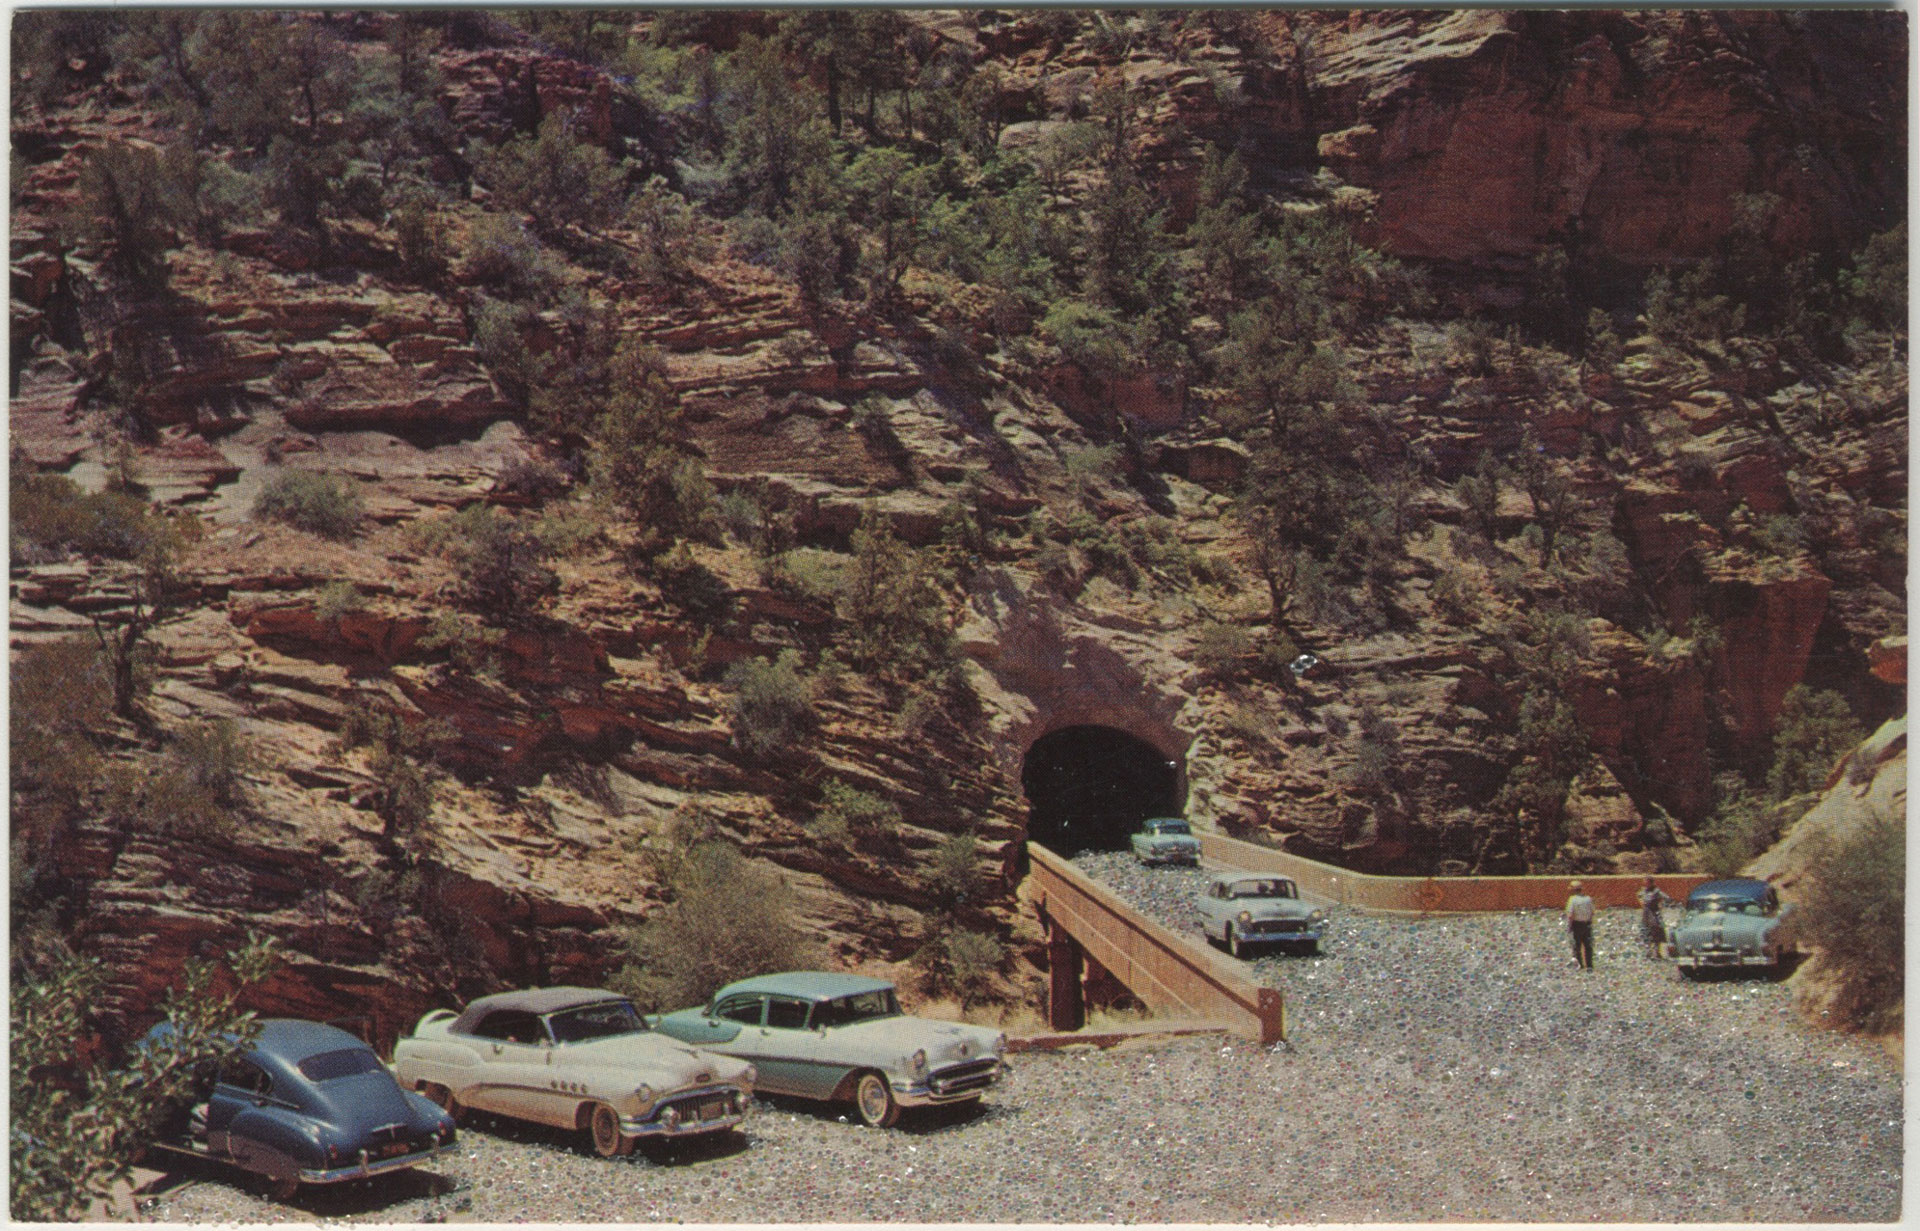 Katie Hargrave and Meredith Lynn Altered vintage postcard of Zion National Park